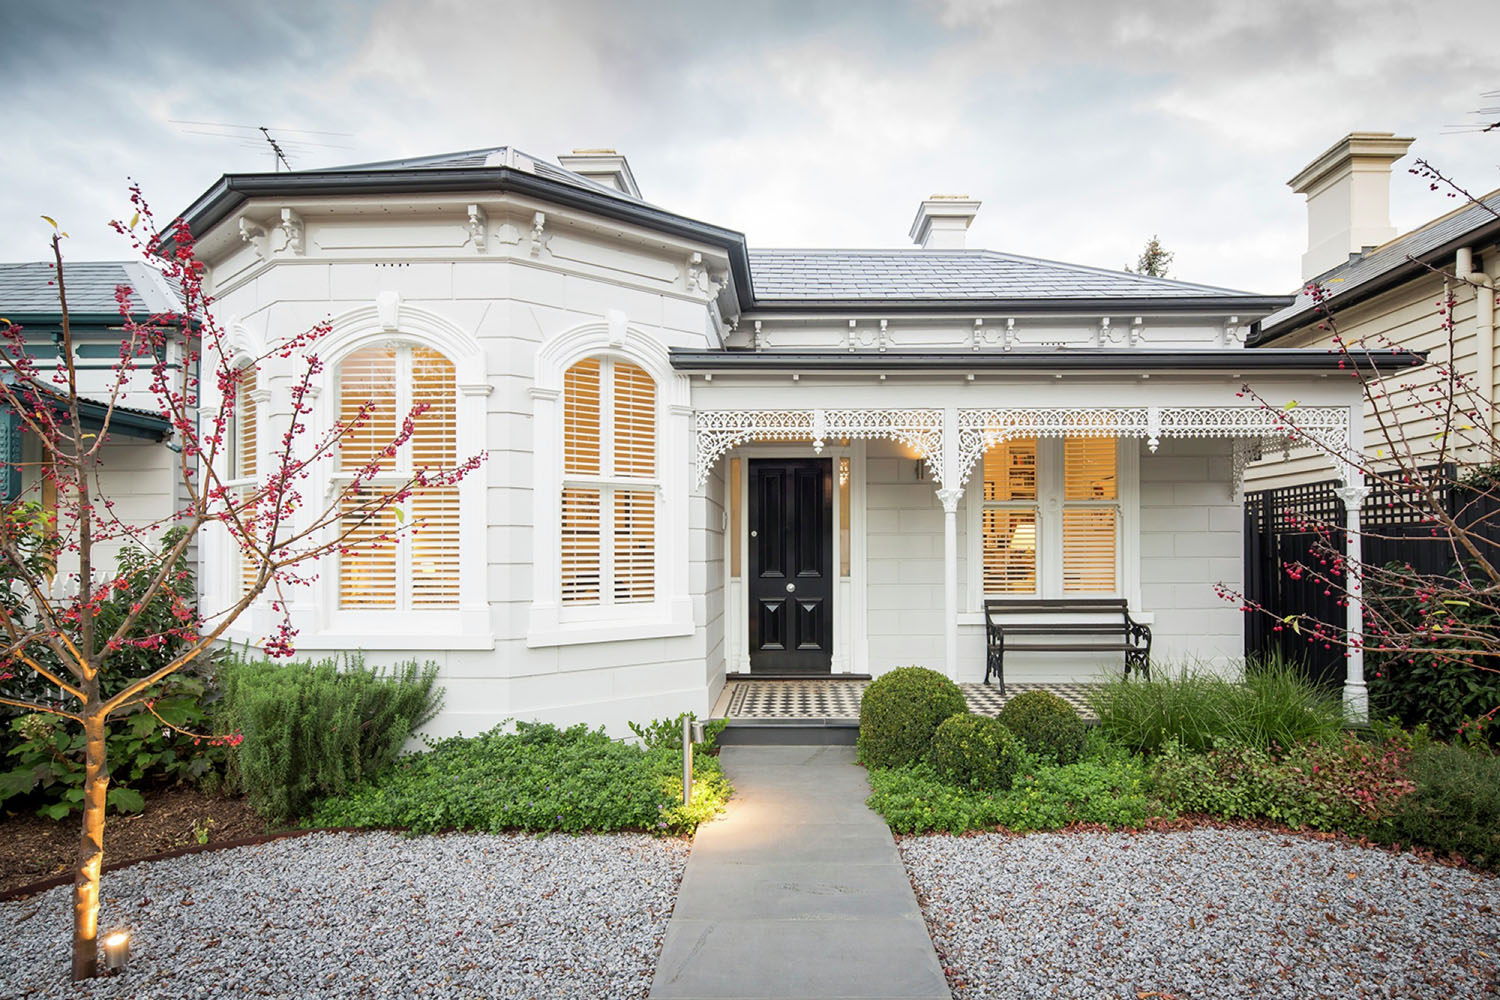 Modern Victorian Architecture victorian style house in melbourne transformed into elegant